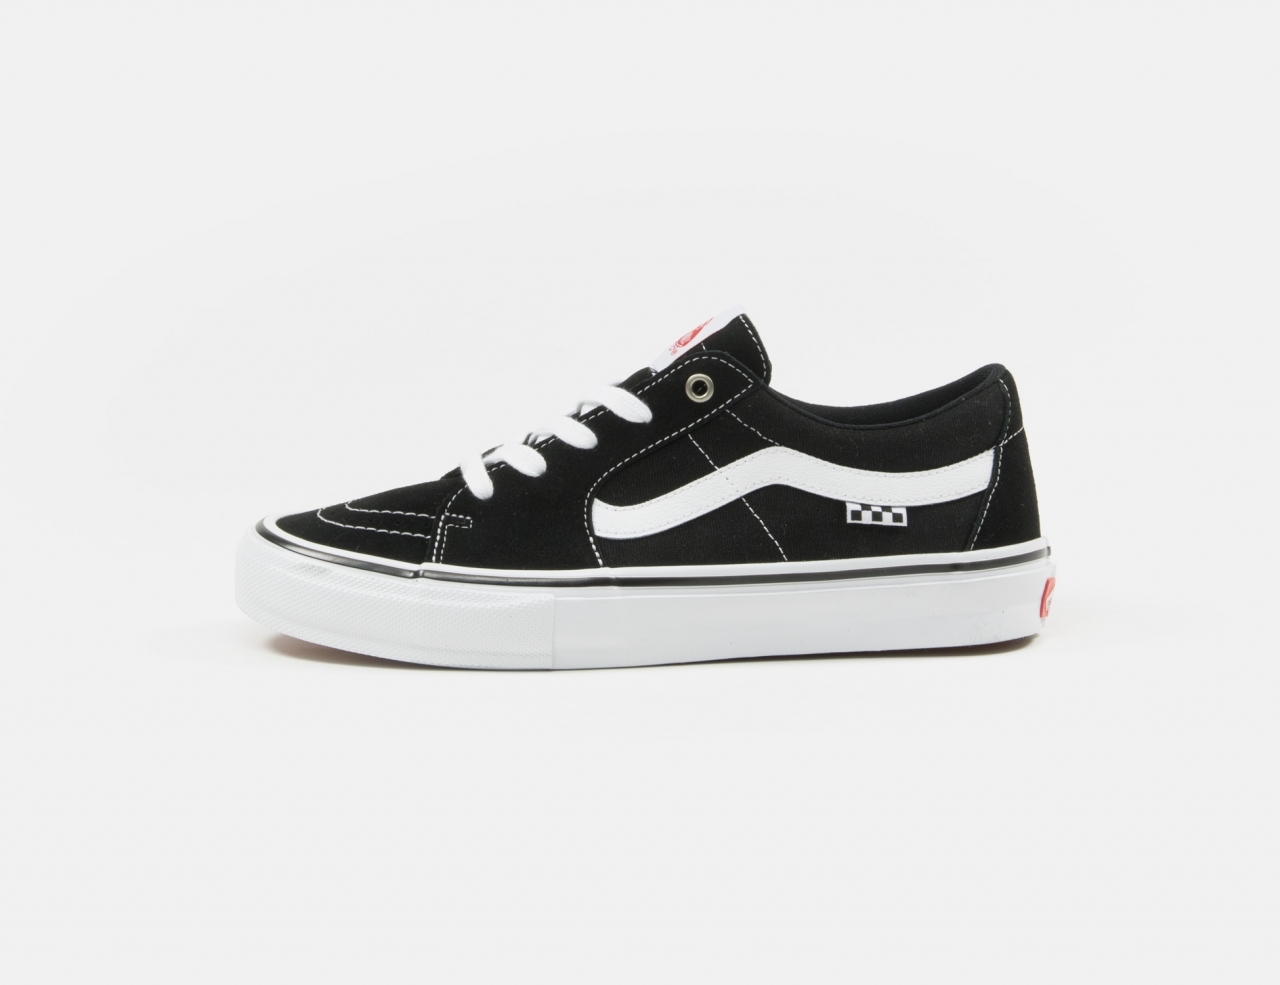 VANS Skate Sk8-Low Sneaker - Black / White